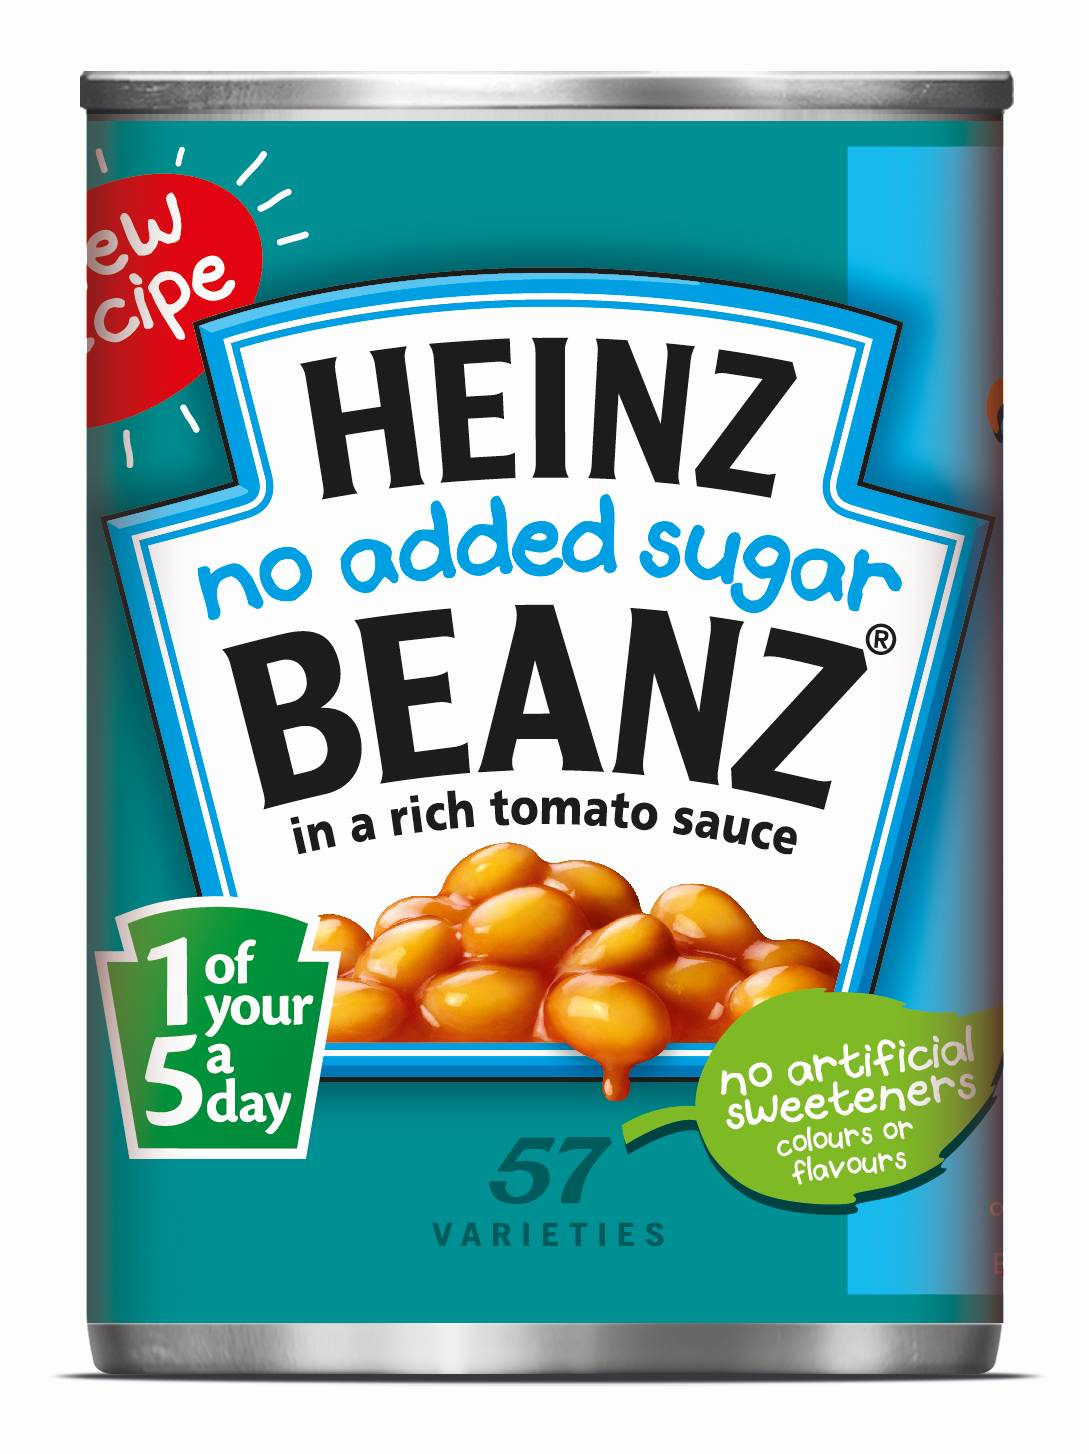 the product analysis for heinz beans Heinz marketing swot pest and five forces executive summary fmcg company heinz is the most global us based food company, with a world-class portfolio of powerful brands holding number 1 and number 2 market positions in more than 50 worldwide markets.